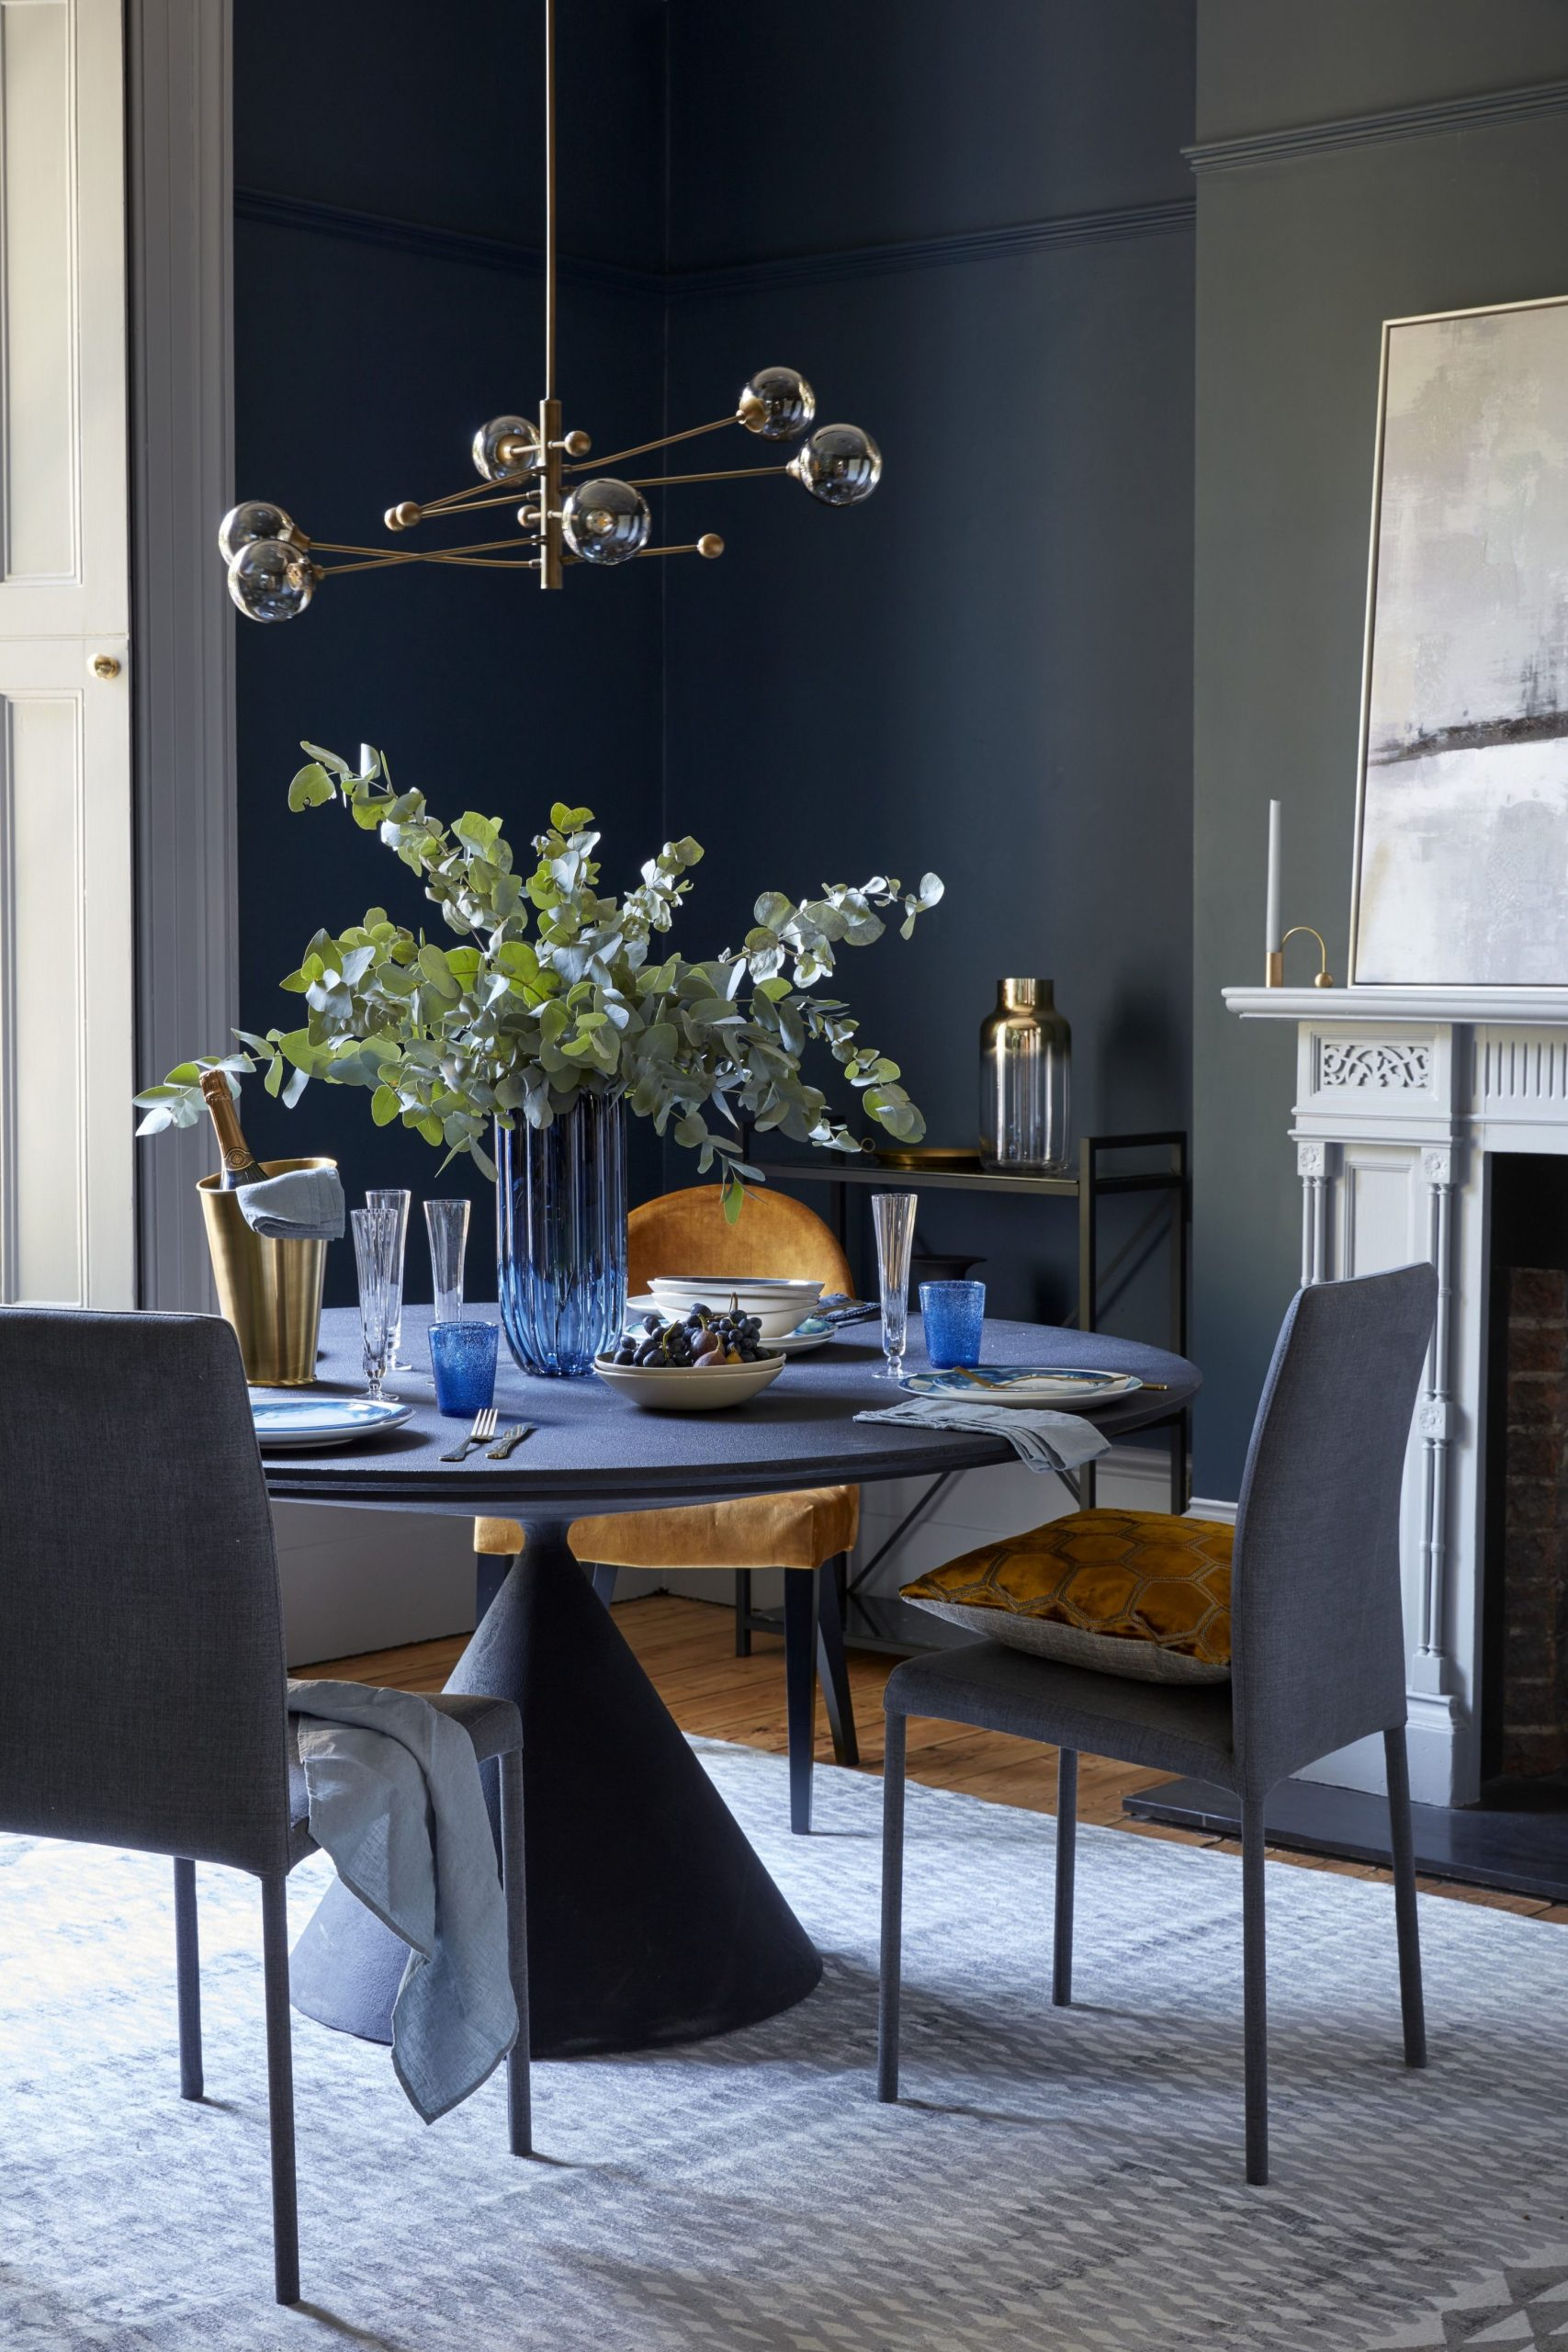 9 Best Dining Room Decorating Ideas - Pictures of Dining Room Decor - Dining Room Ideas In Uk